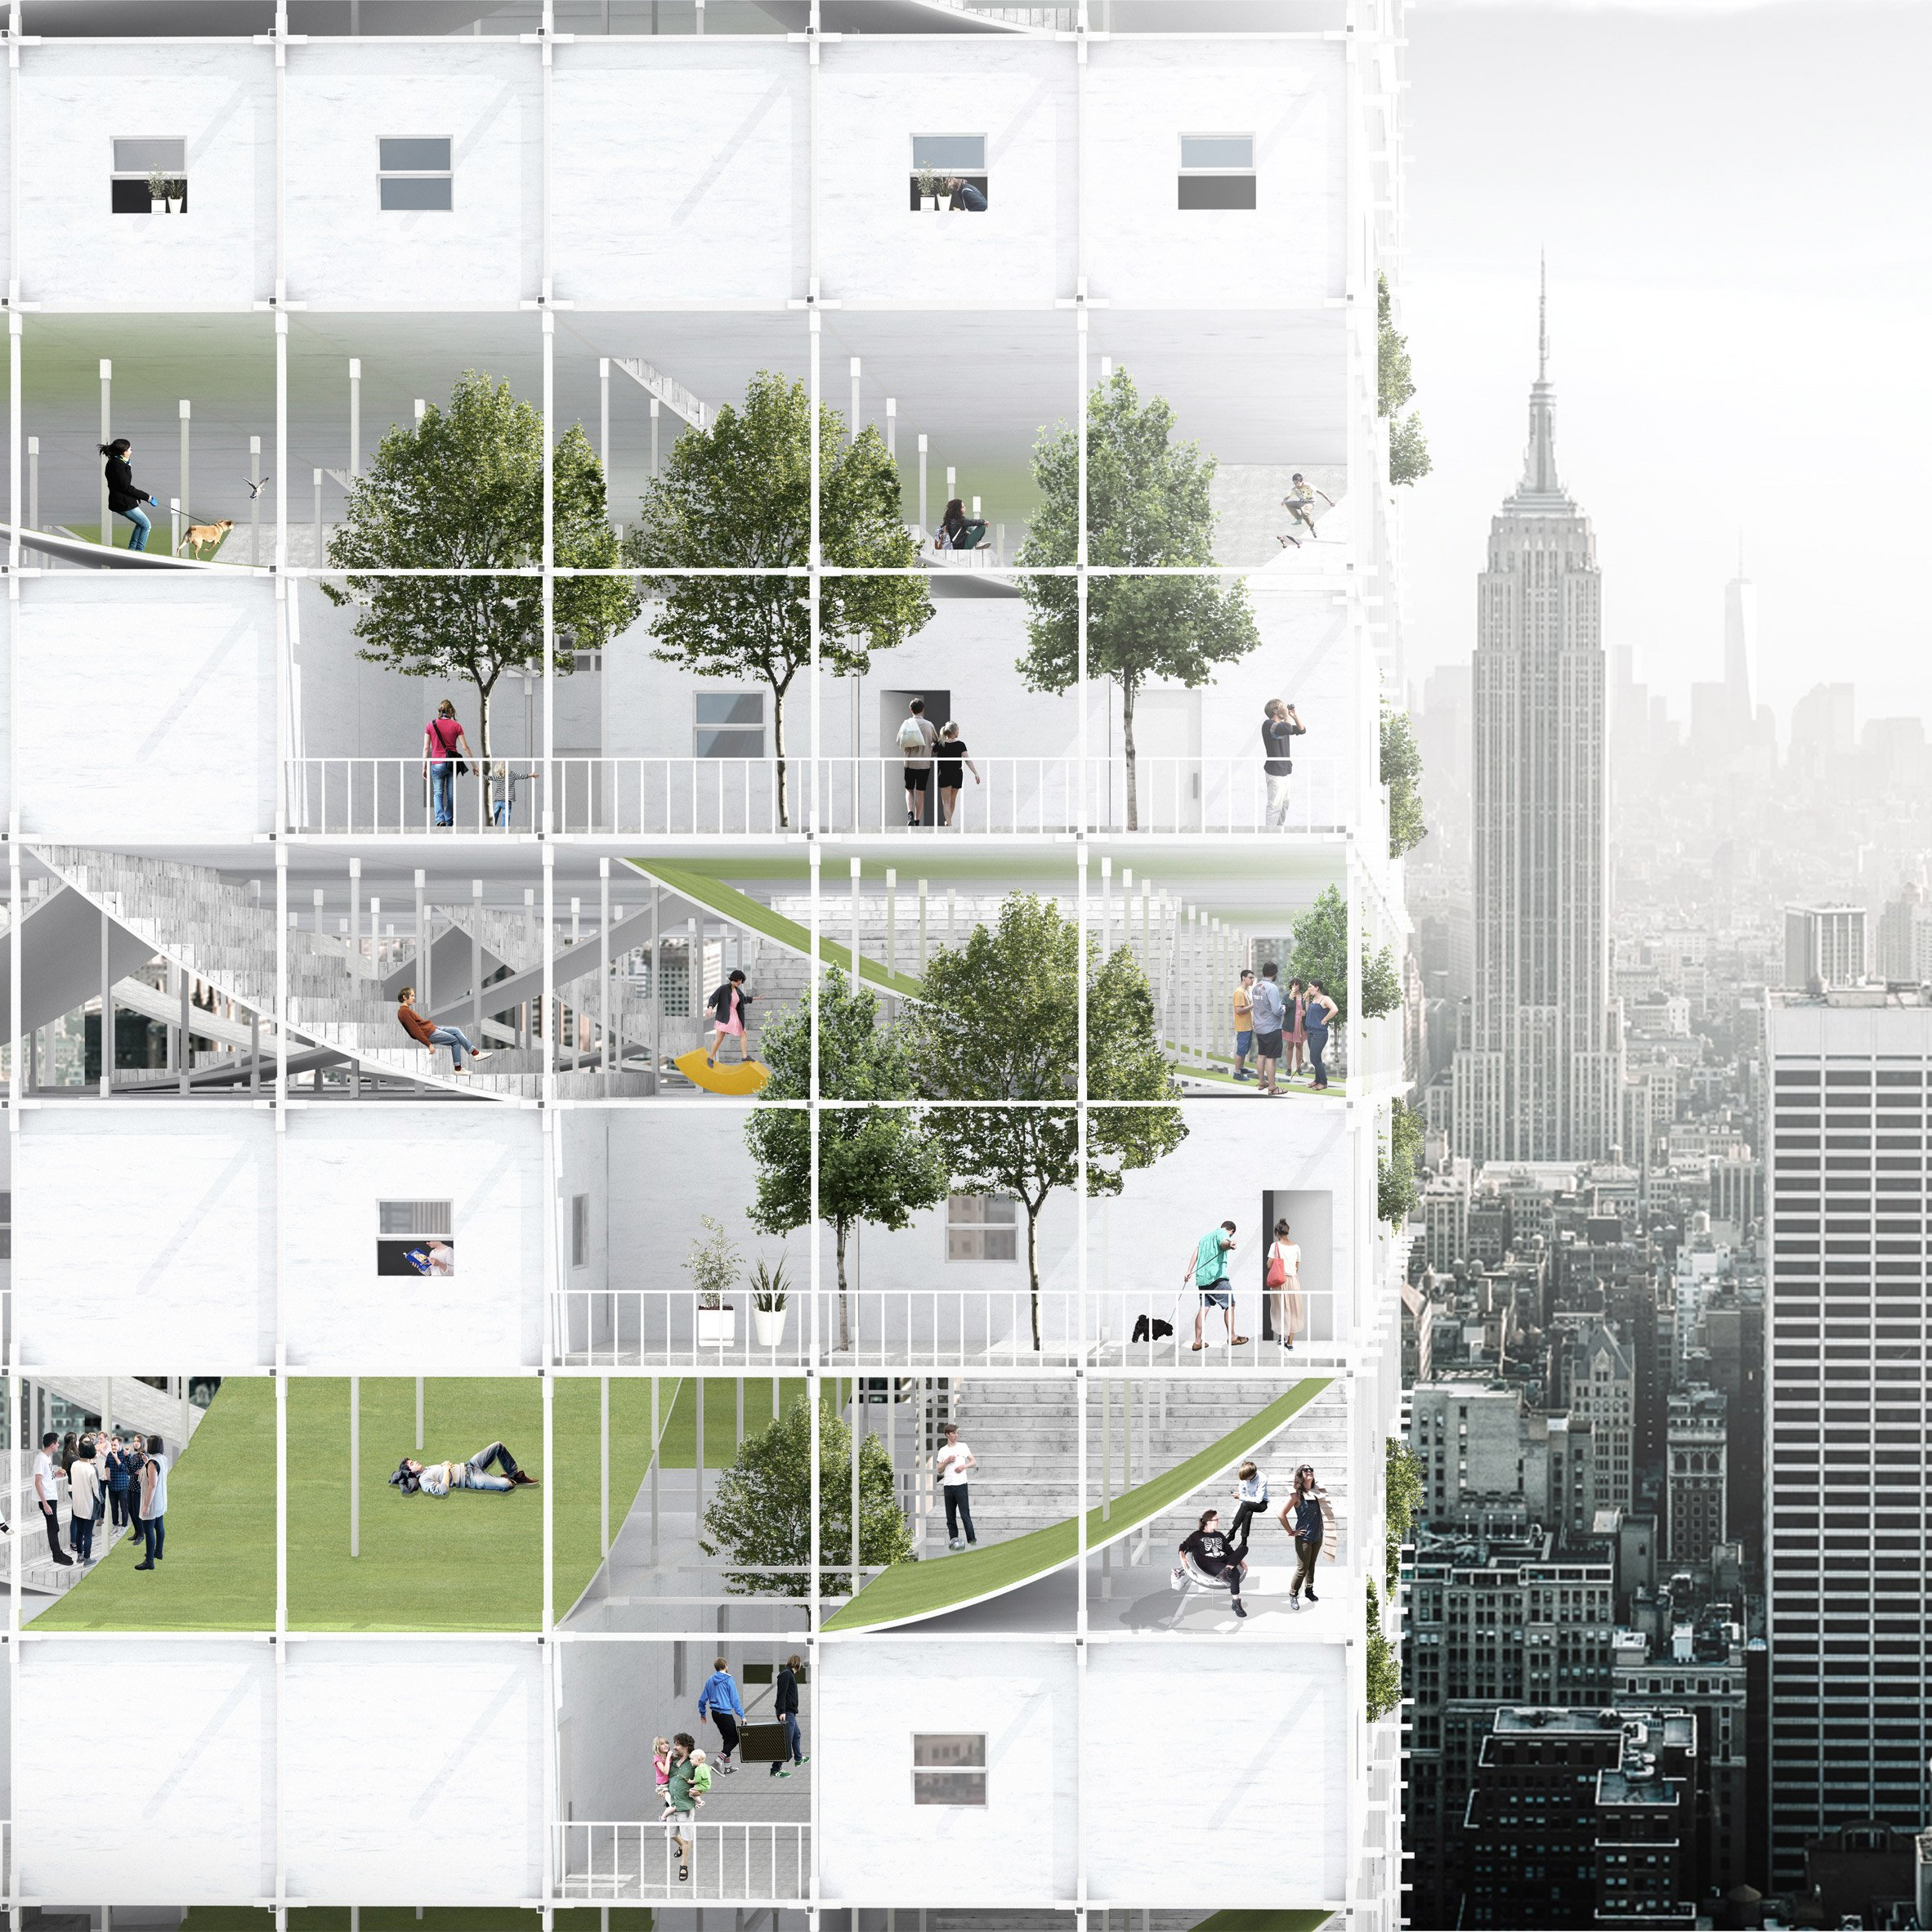 Modular Affordable Housing Envisioned For Abandoned New York Airspace This Conceptual